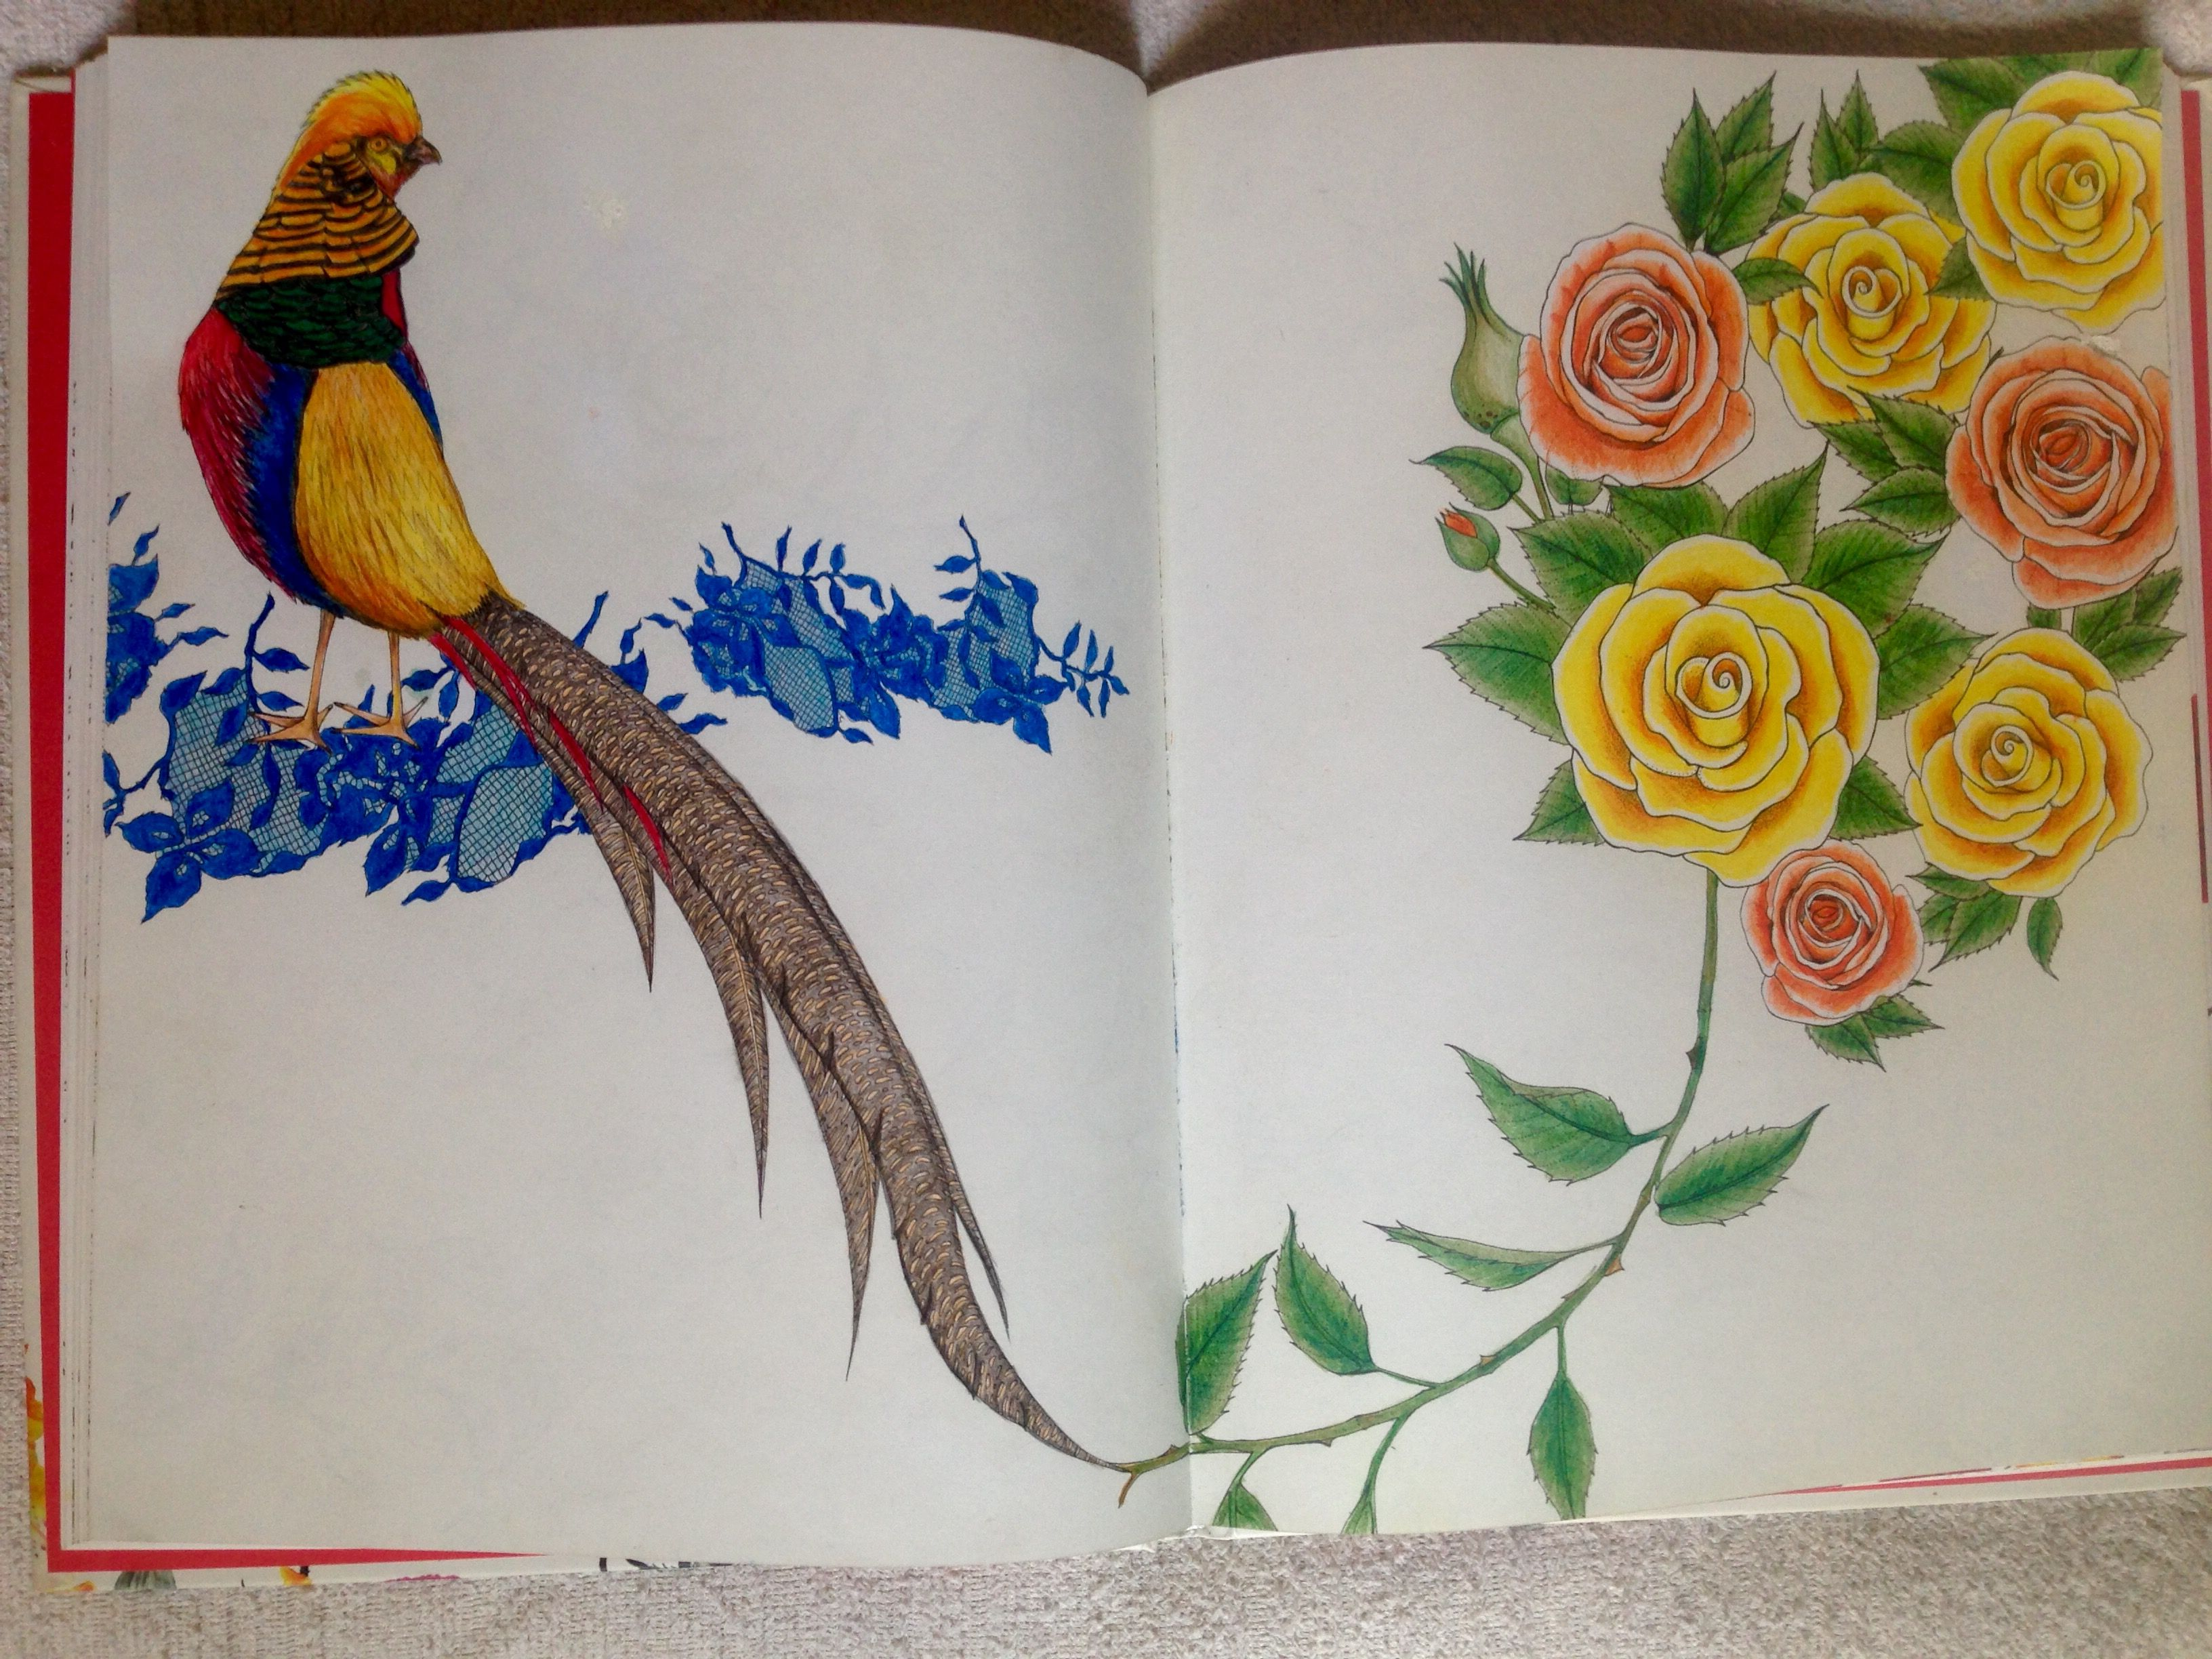 Coloring Book Birdtopia Daisy Fletcher Coloring Books Arts And Crafts Coloring Pages